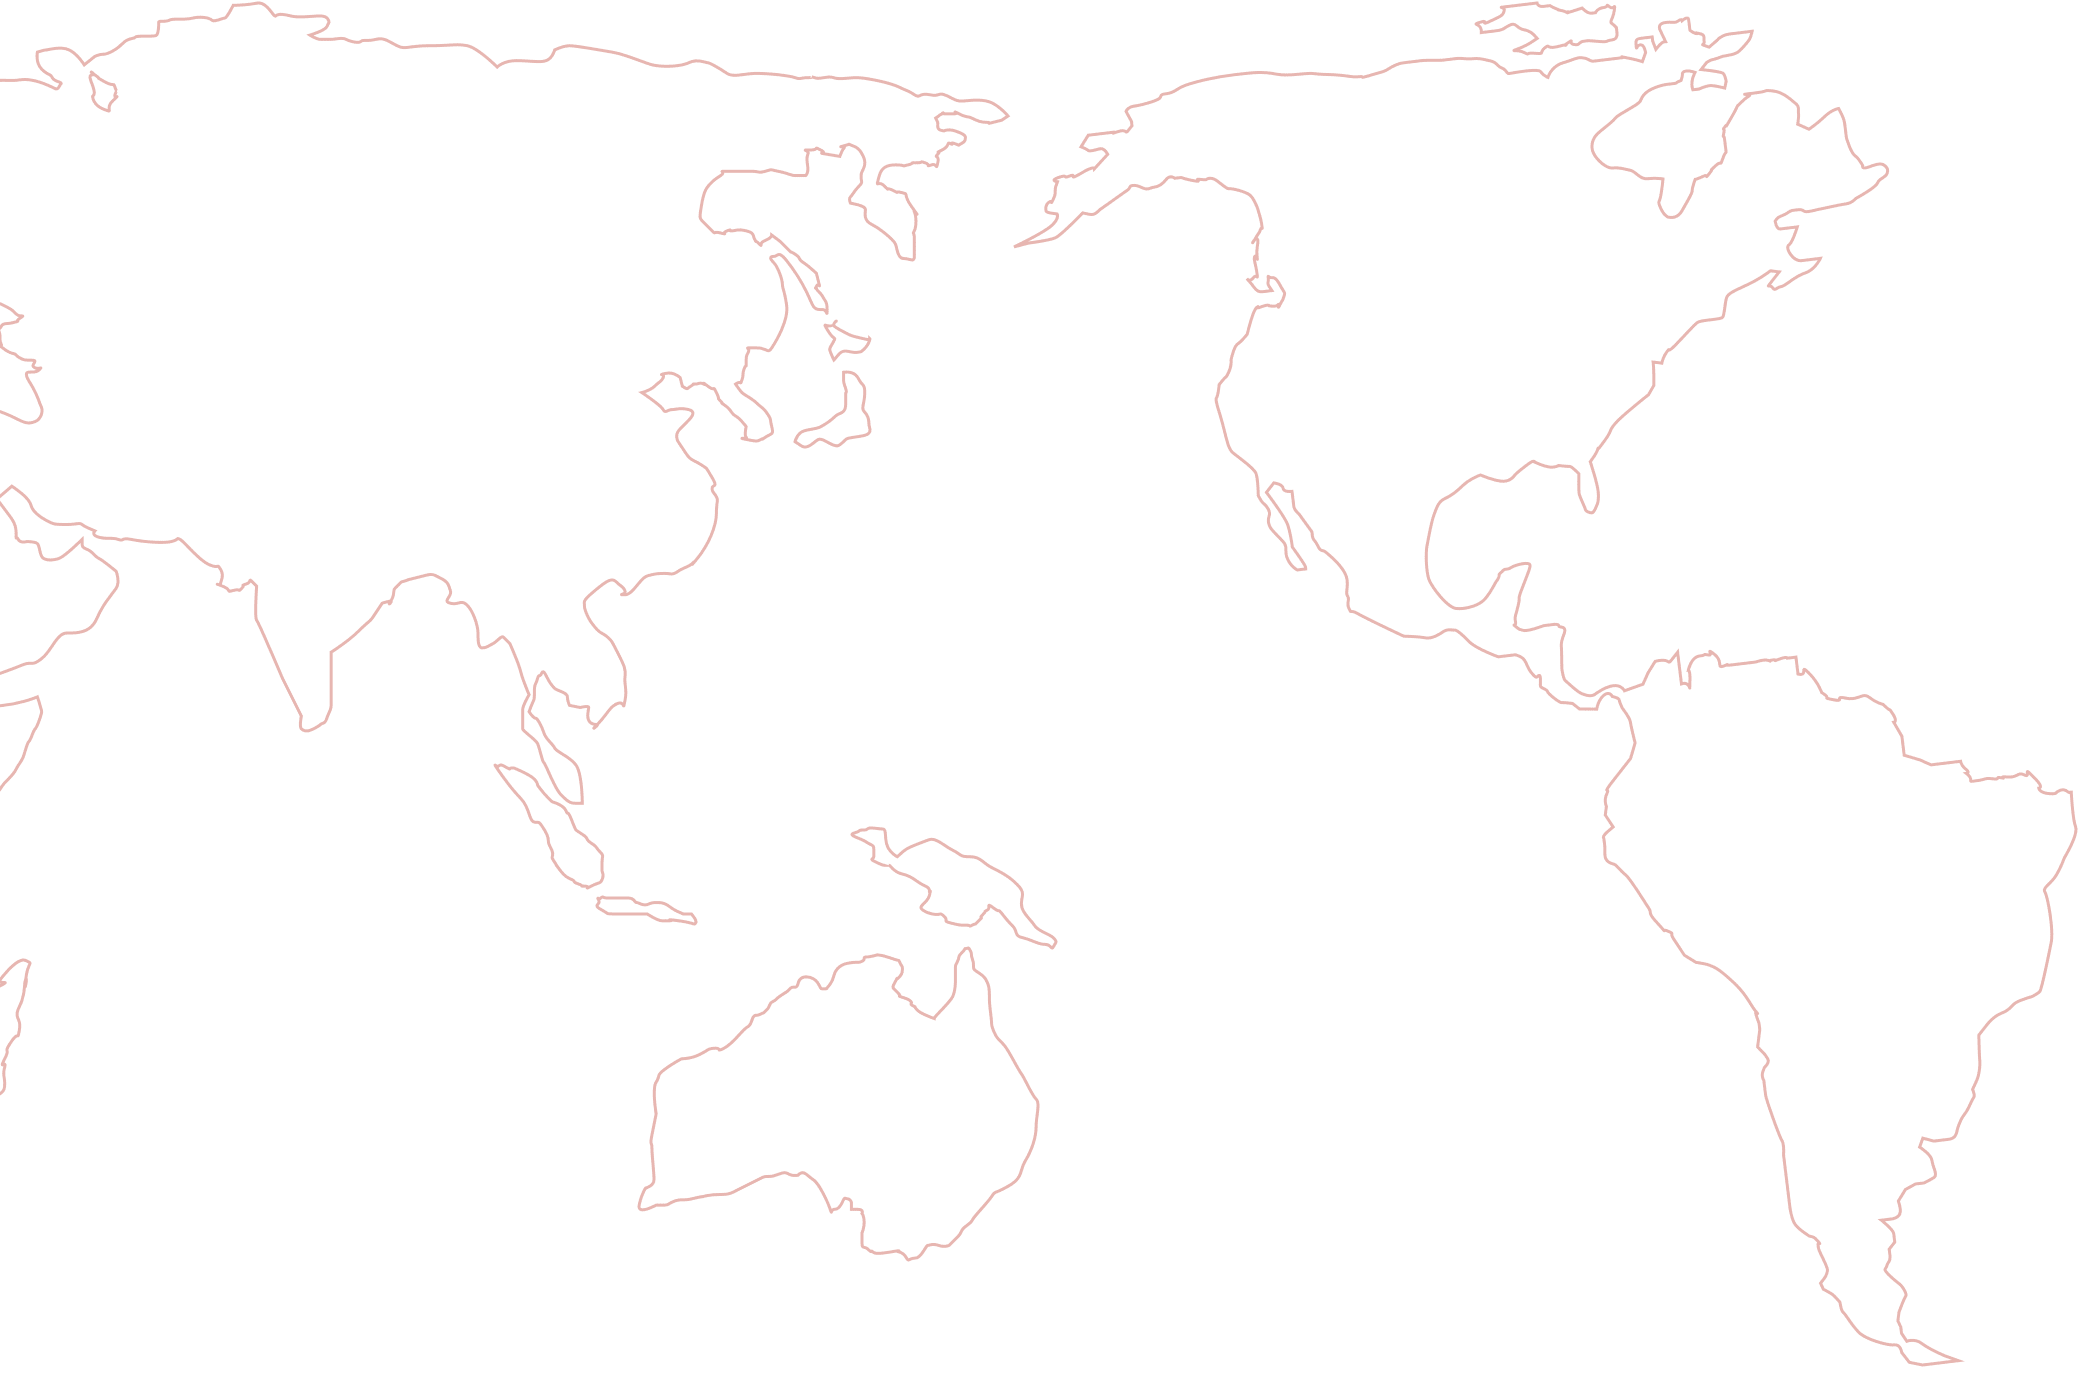 Outline map of Oceana, North and South America